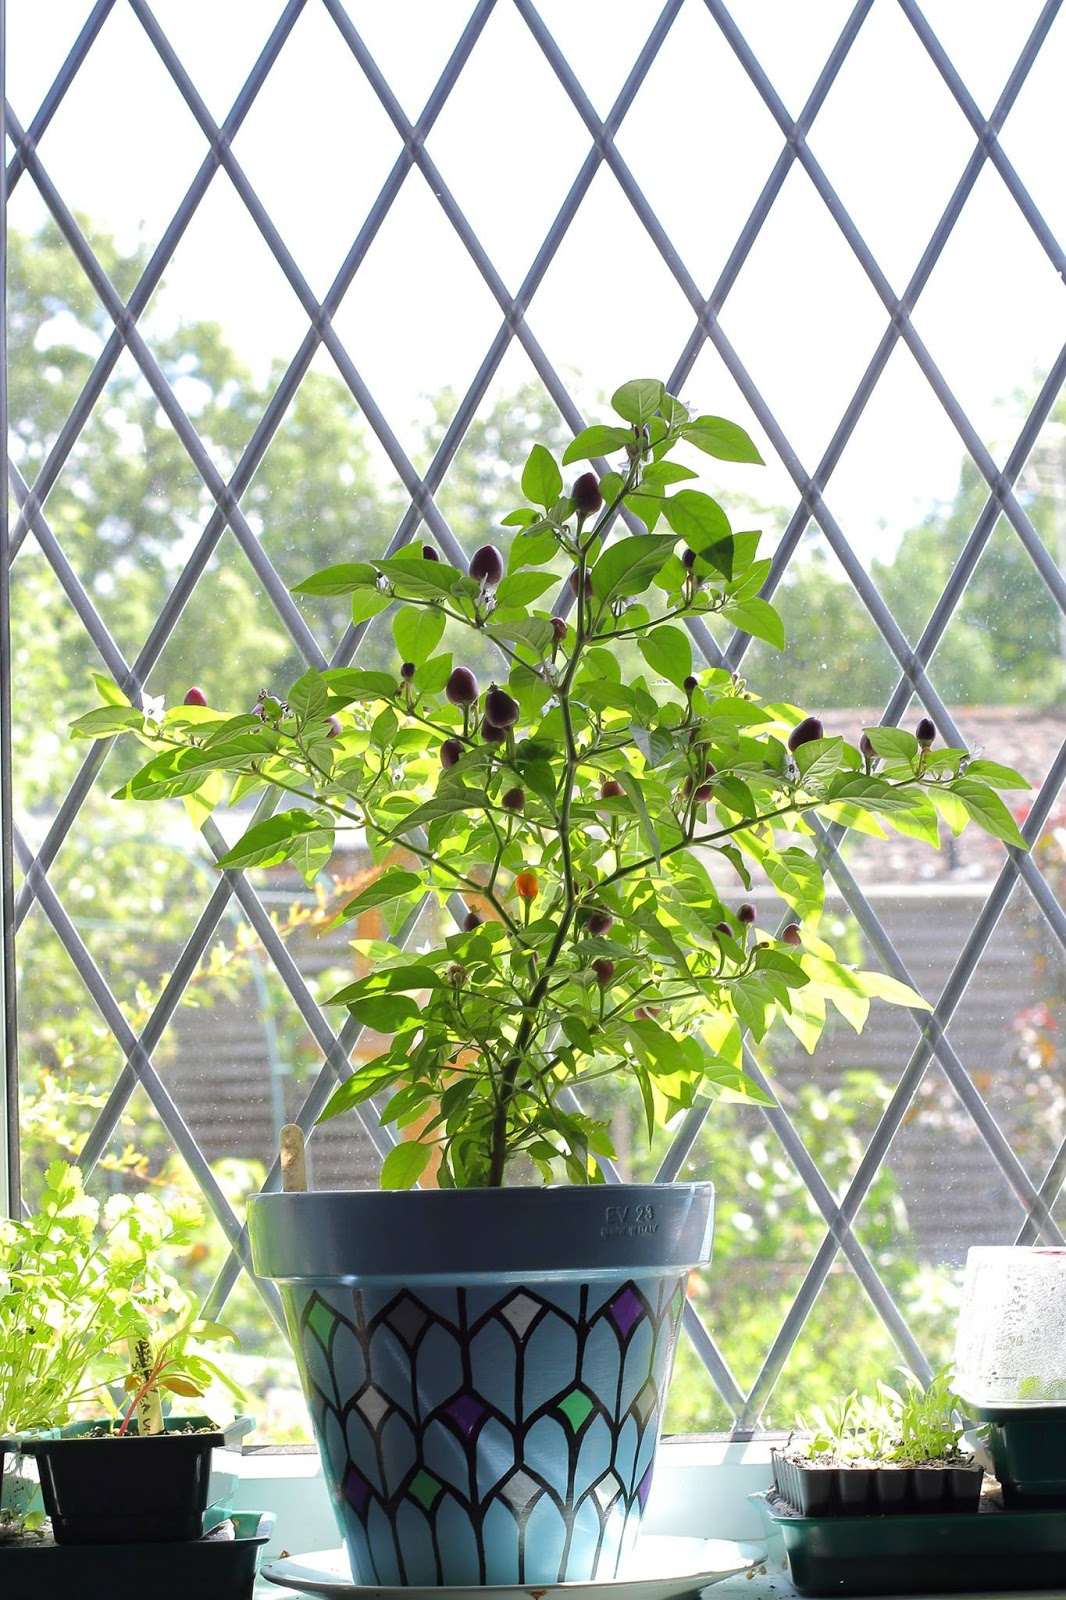 Tomato variety Goldfish who planted, photo, reviews and description